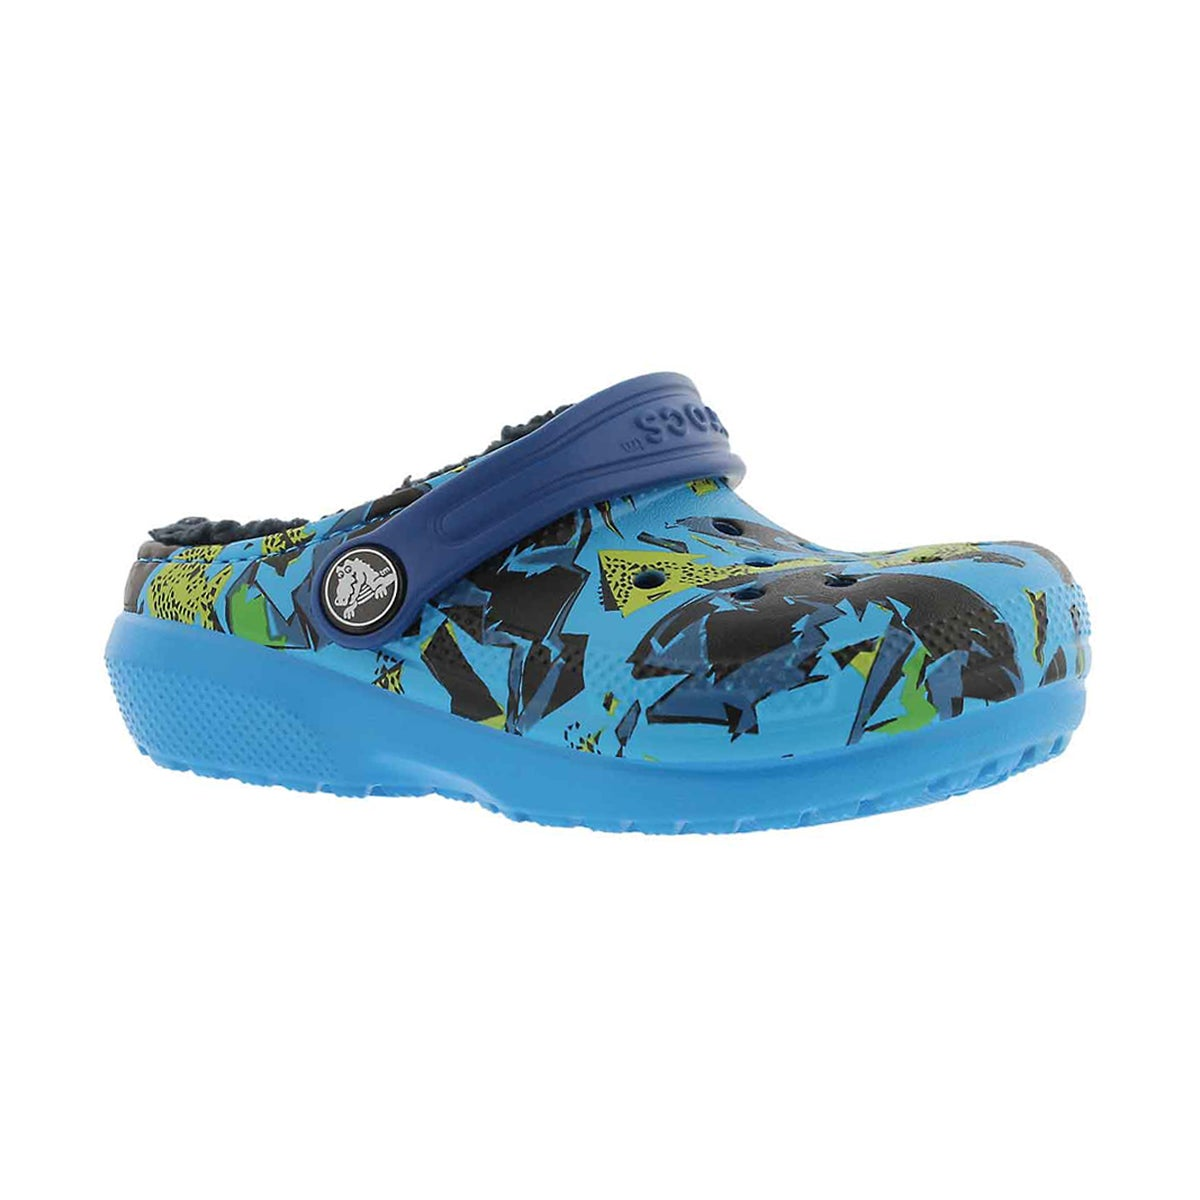 Boys' CLASSIC LINED GRAPHIC ocean/navy clogs